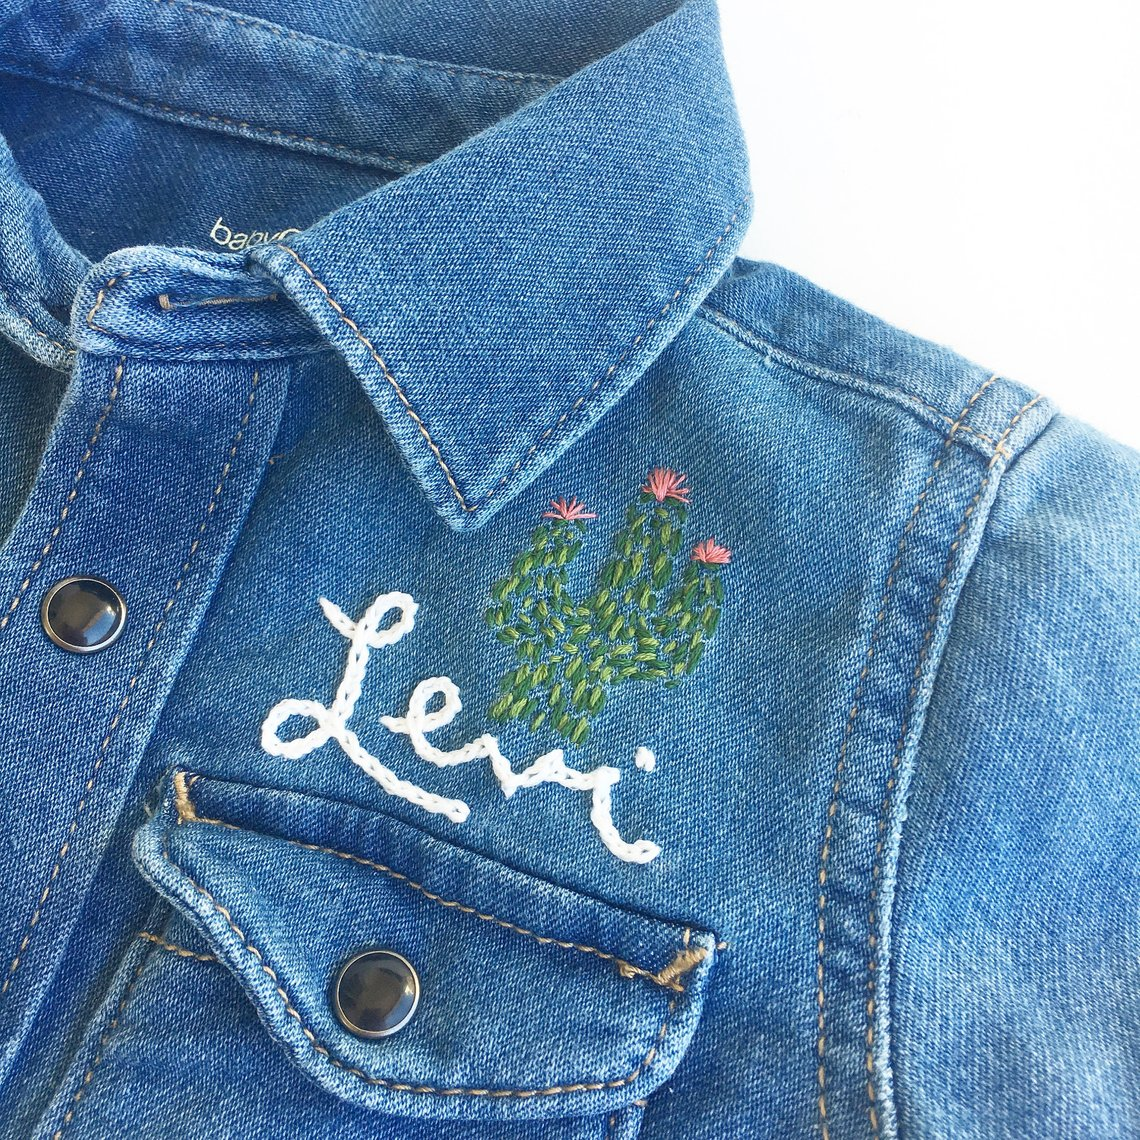 Custom Hand Embroidered Denim Jacket By PFPosey